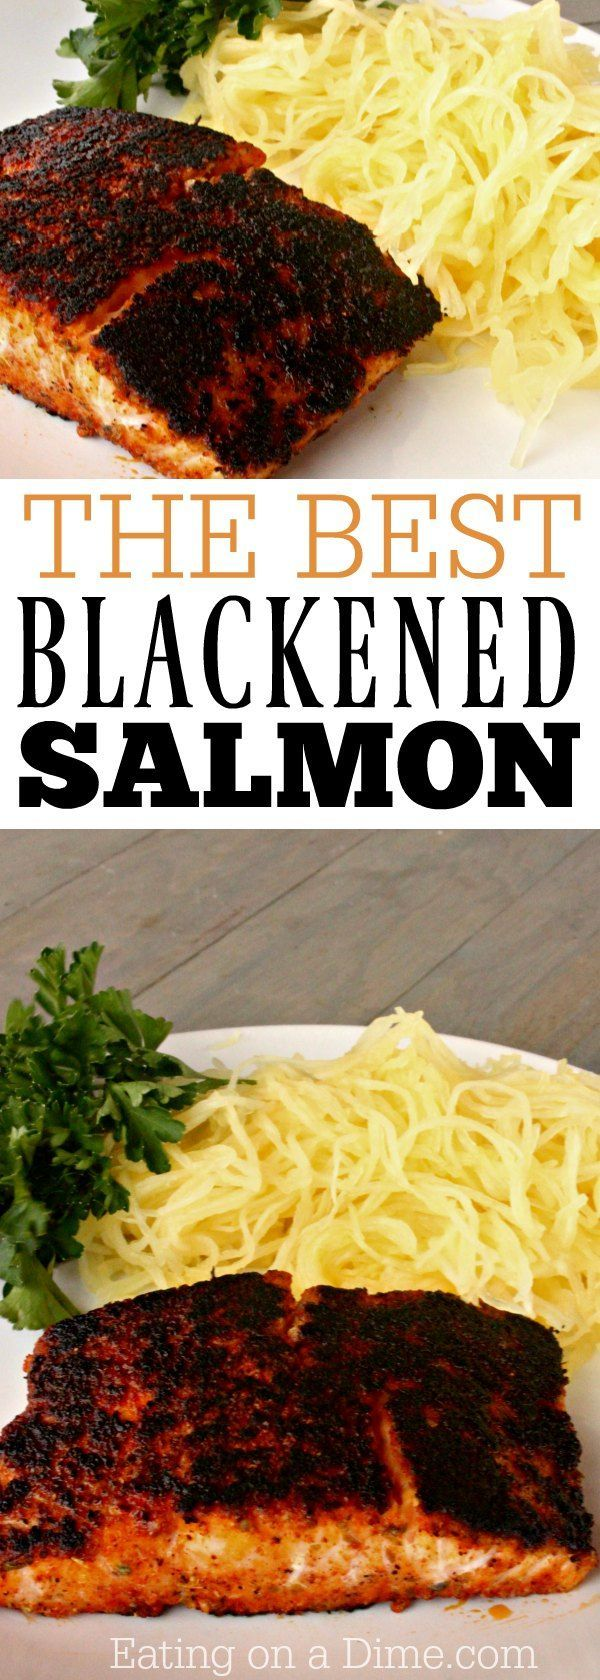 Photo of Best Blackened Salmon Recipe – Ready in just 6 minutes!